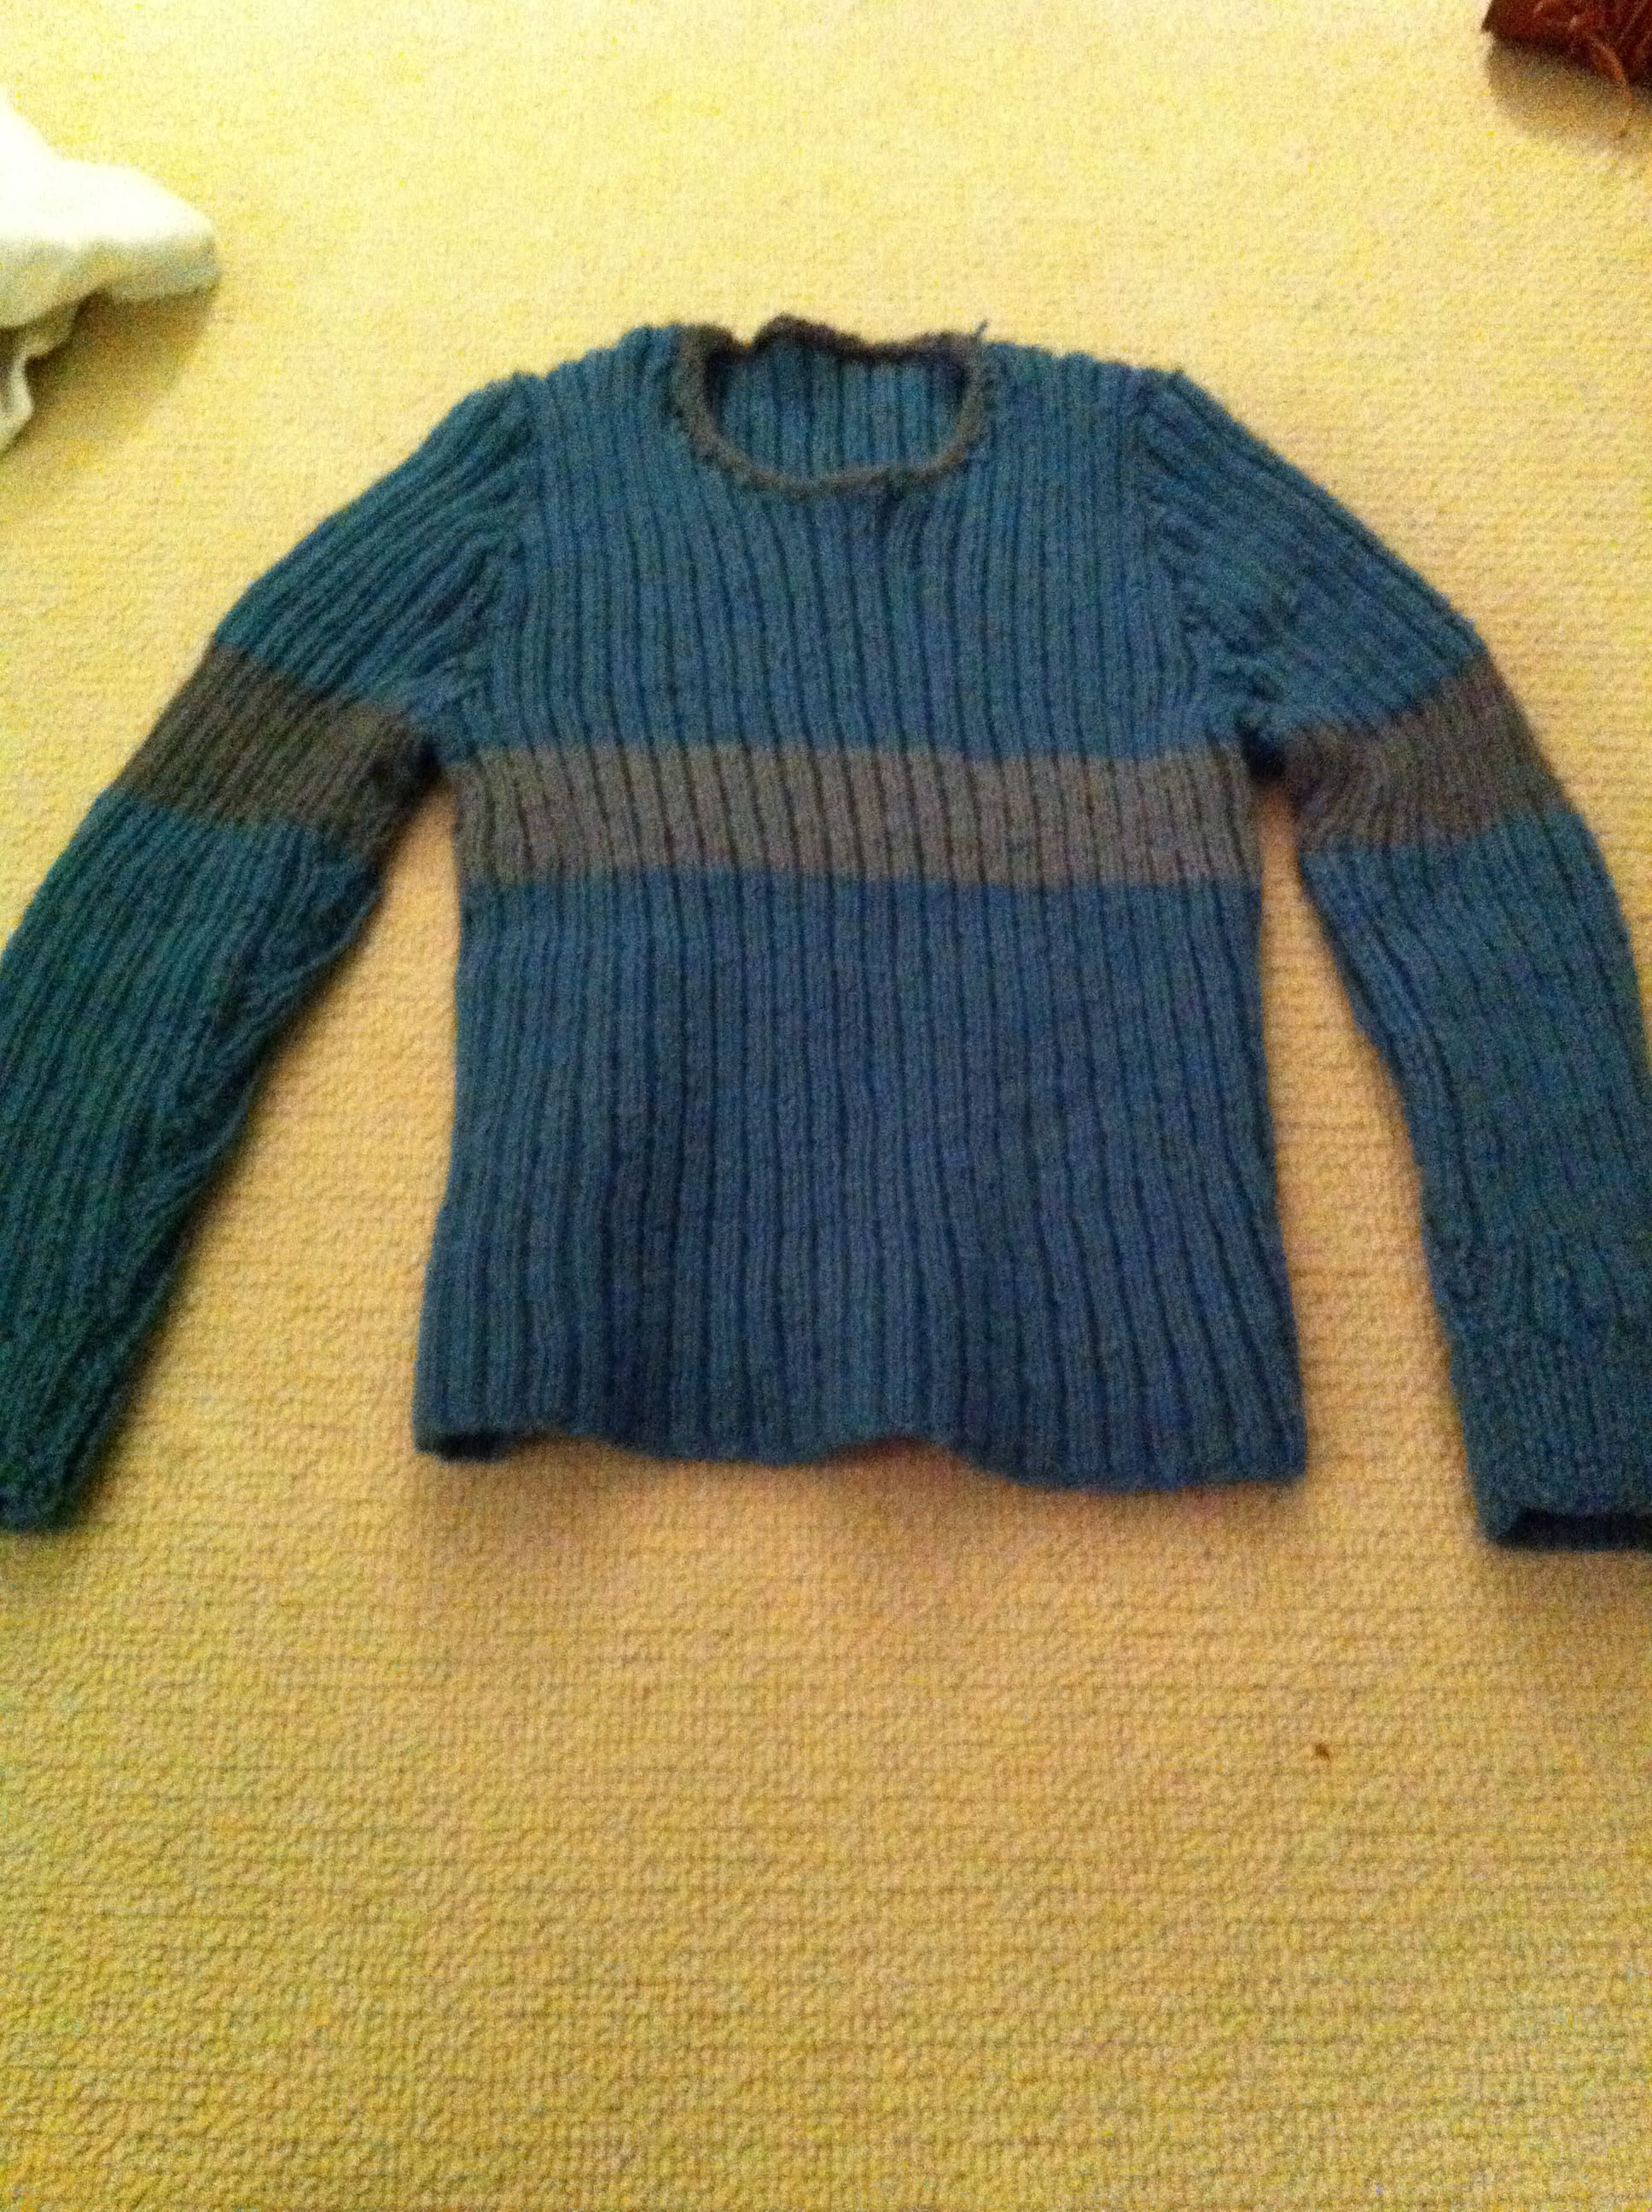 Ravenclaw Quidditch Sweater that I knit for myself! Its lovely and warm ...